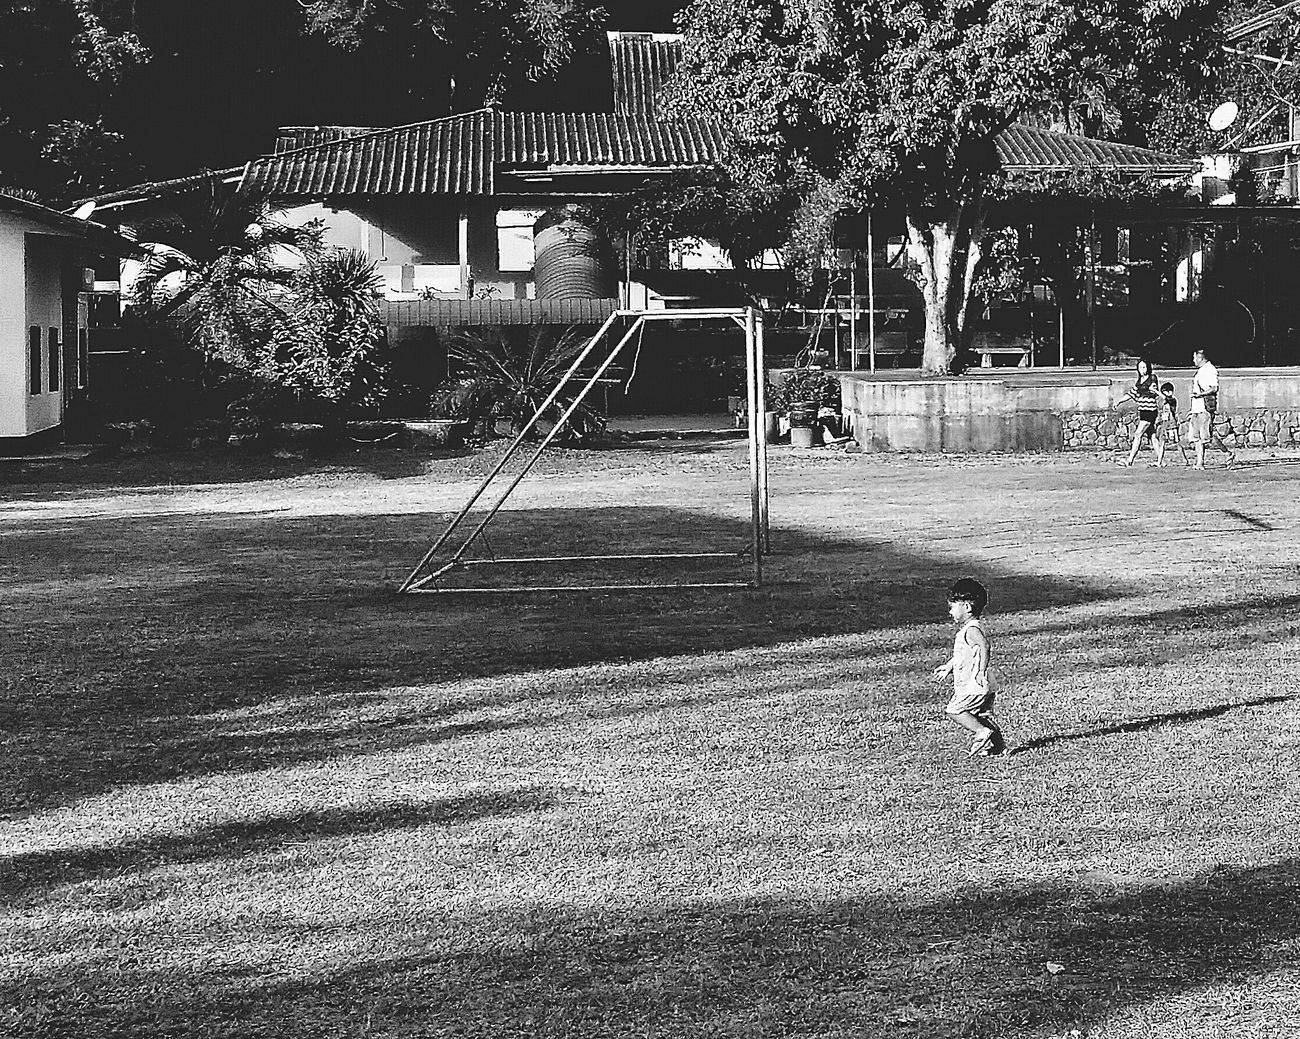 Little Boy Boy Child Goal Post BuildingsSchool Field Schoolfield Trees Nature Naturelovers Maenam Koh Samui Thailand Travelphotography Streetphotography Bnw Bnwcollection Bnwphotography Bnw_captures Bnw_travel Bnw_world Bnw_streetphotography Bnw_kohsamui Bnw_thailand